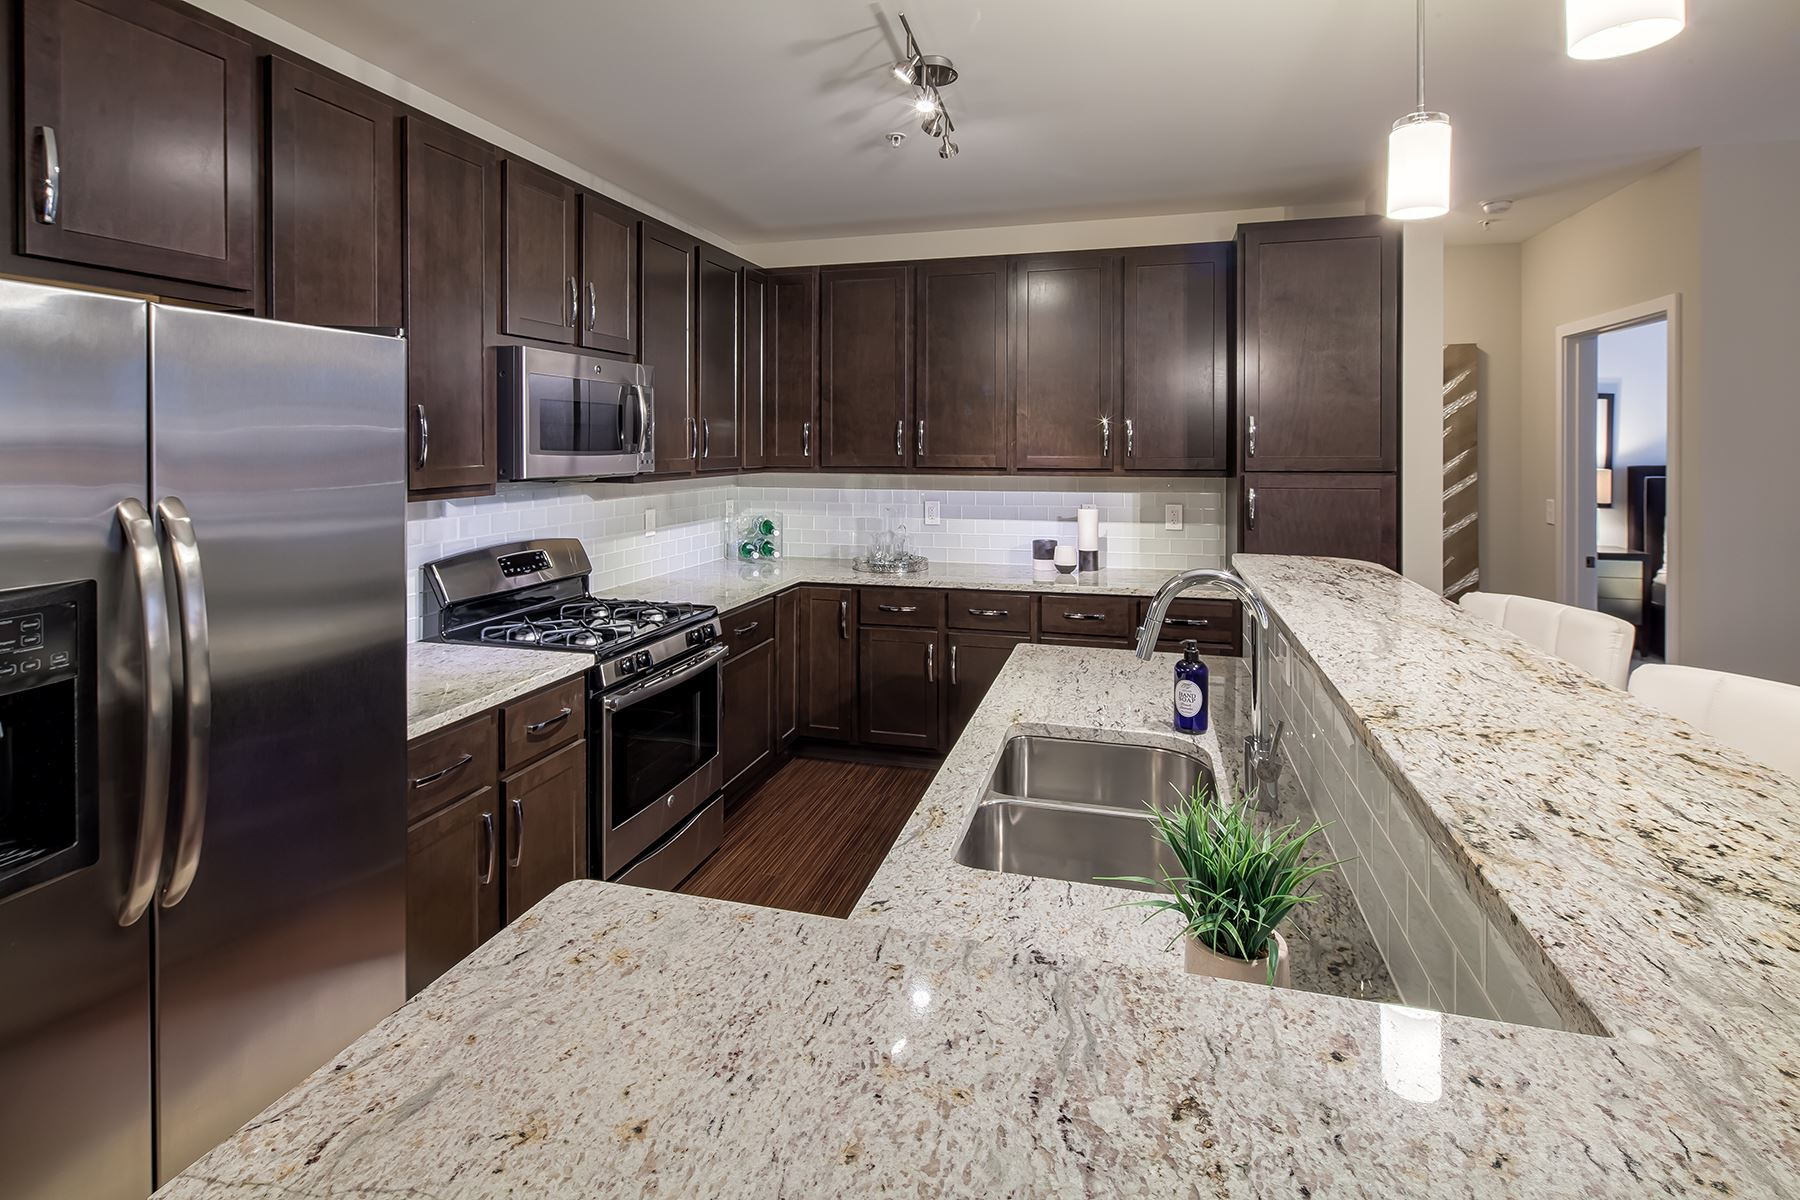 Beautifully appointed kitchen with a gas stove, gooseneck faucet, and stainless-steel appliances